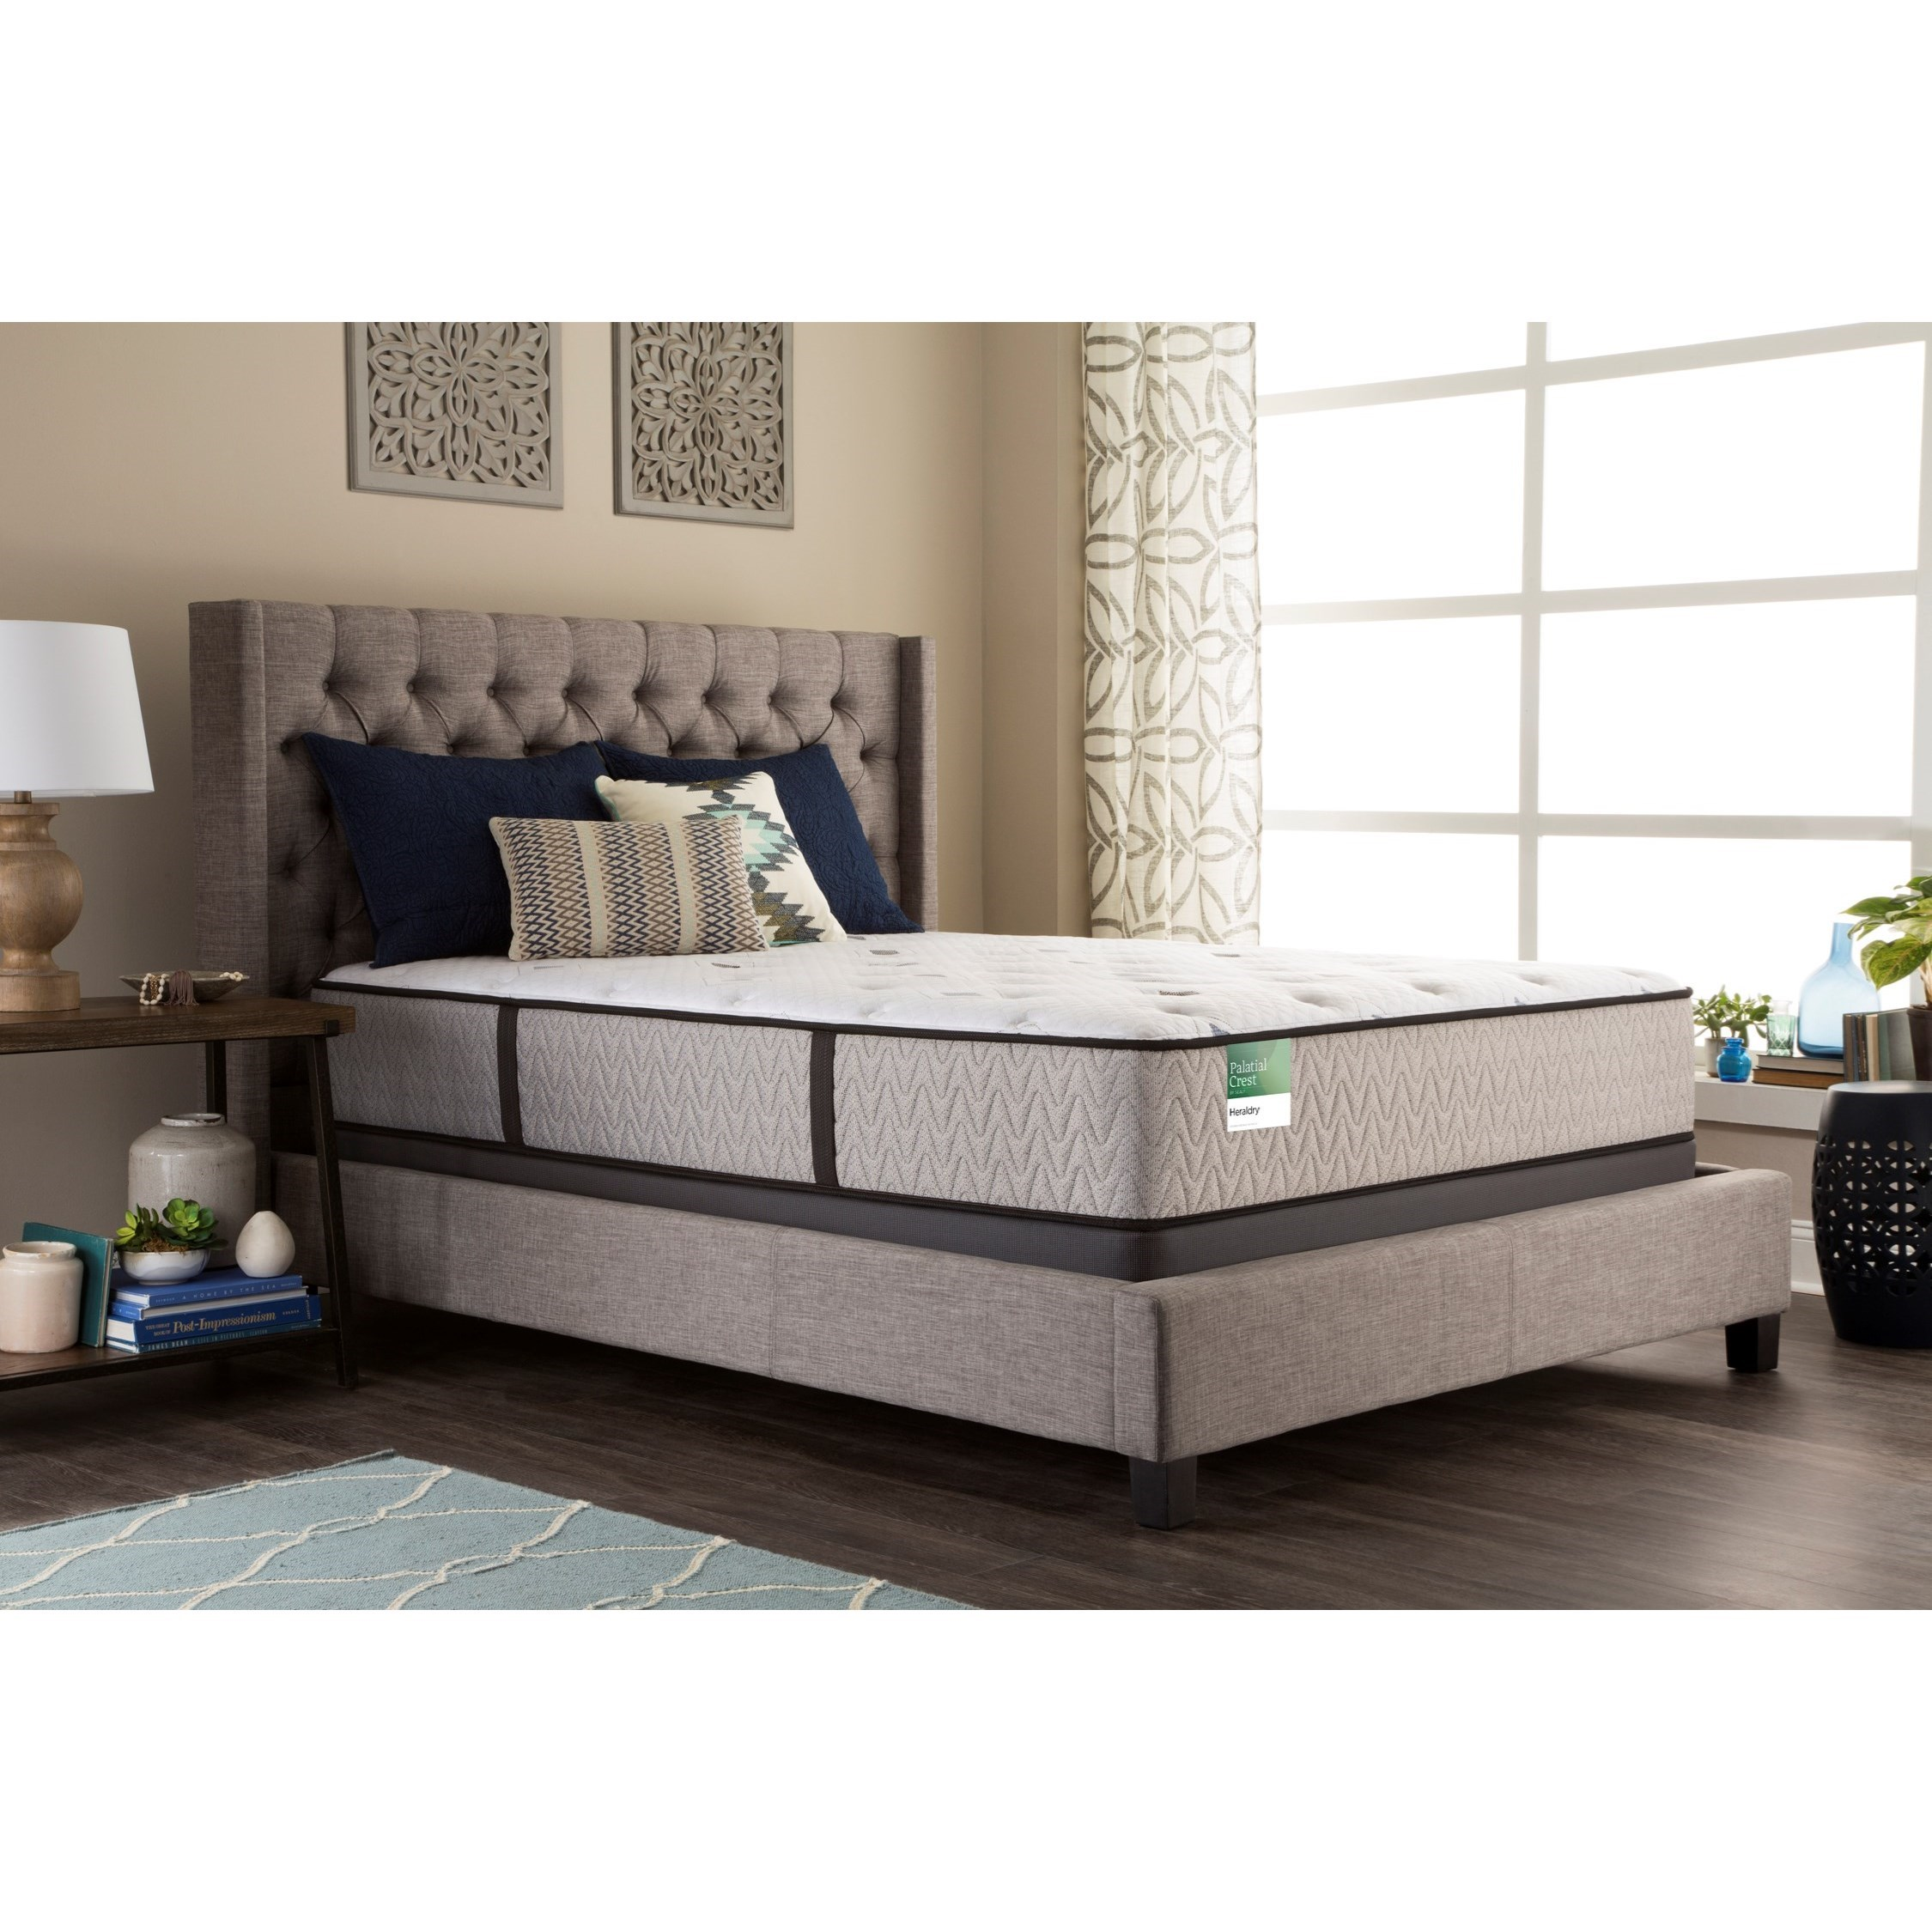 "King 12 1/2"" Plush Mattress Set"